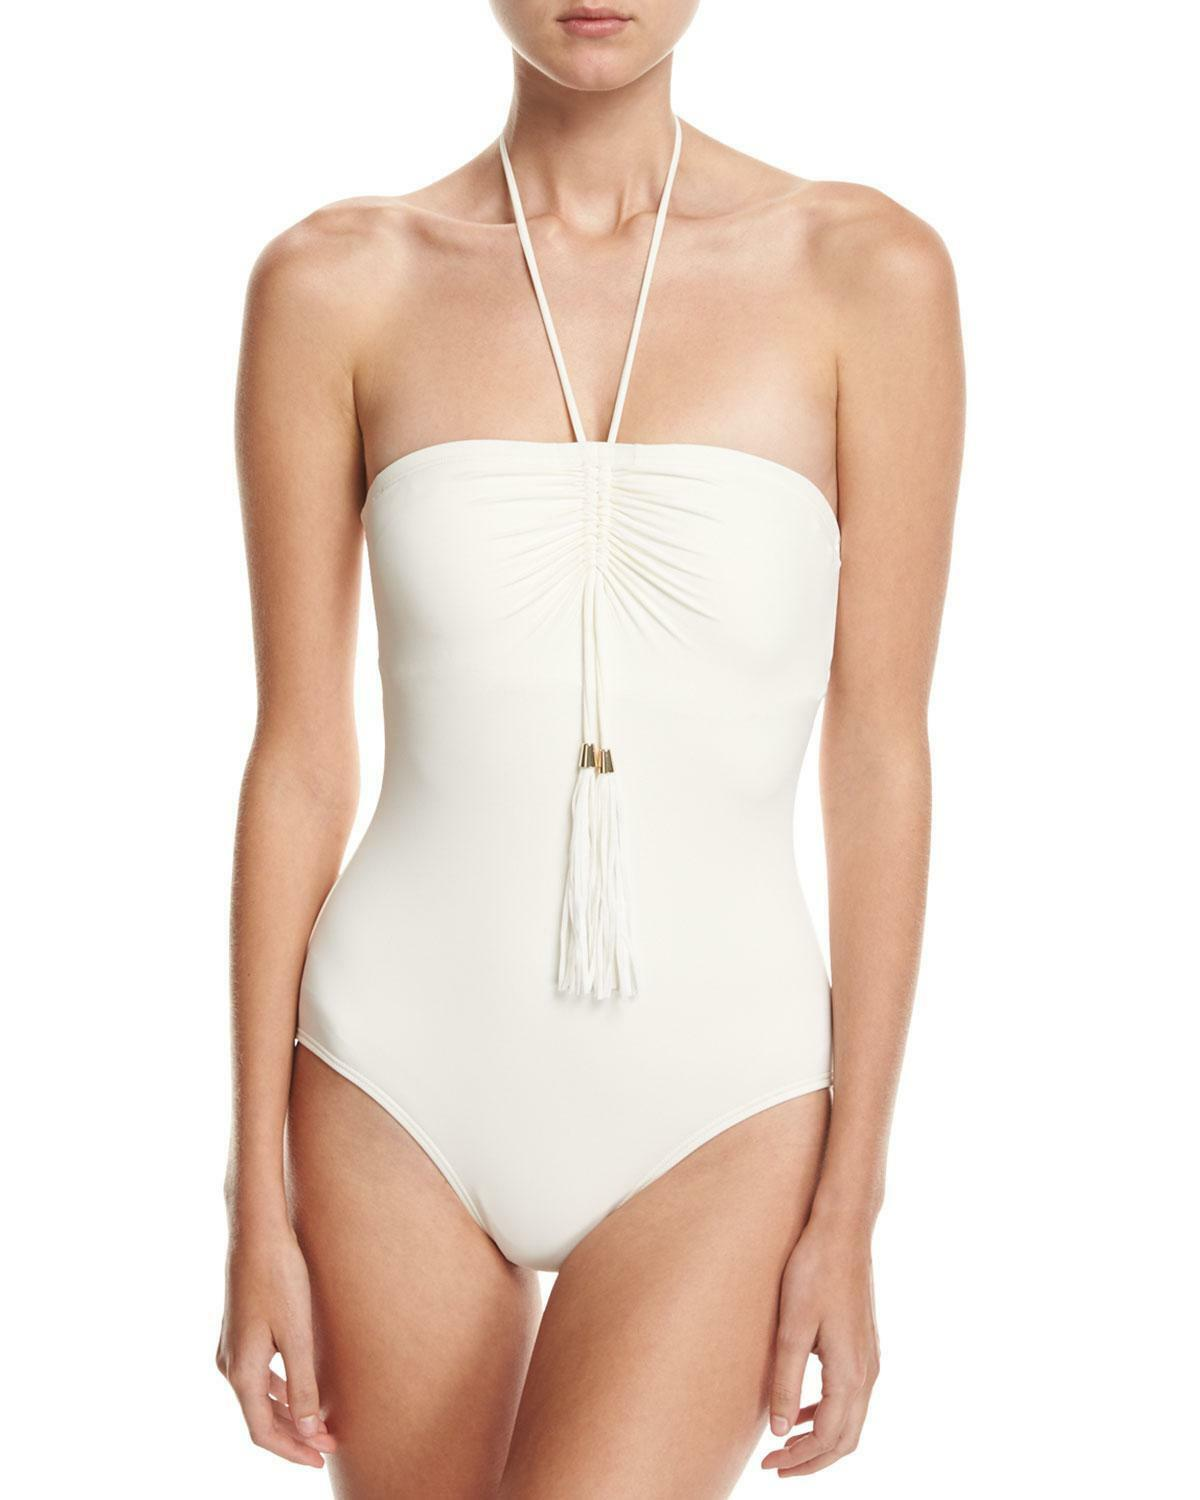 NWT Vince Camuto Swimsuit TASSEL-ACCENT 1 ONE-PIECE Ivory size 4